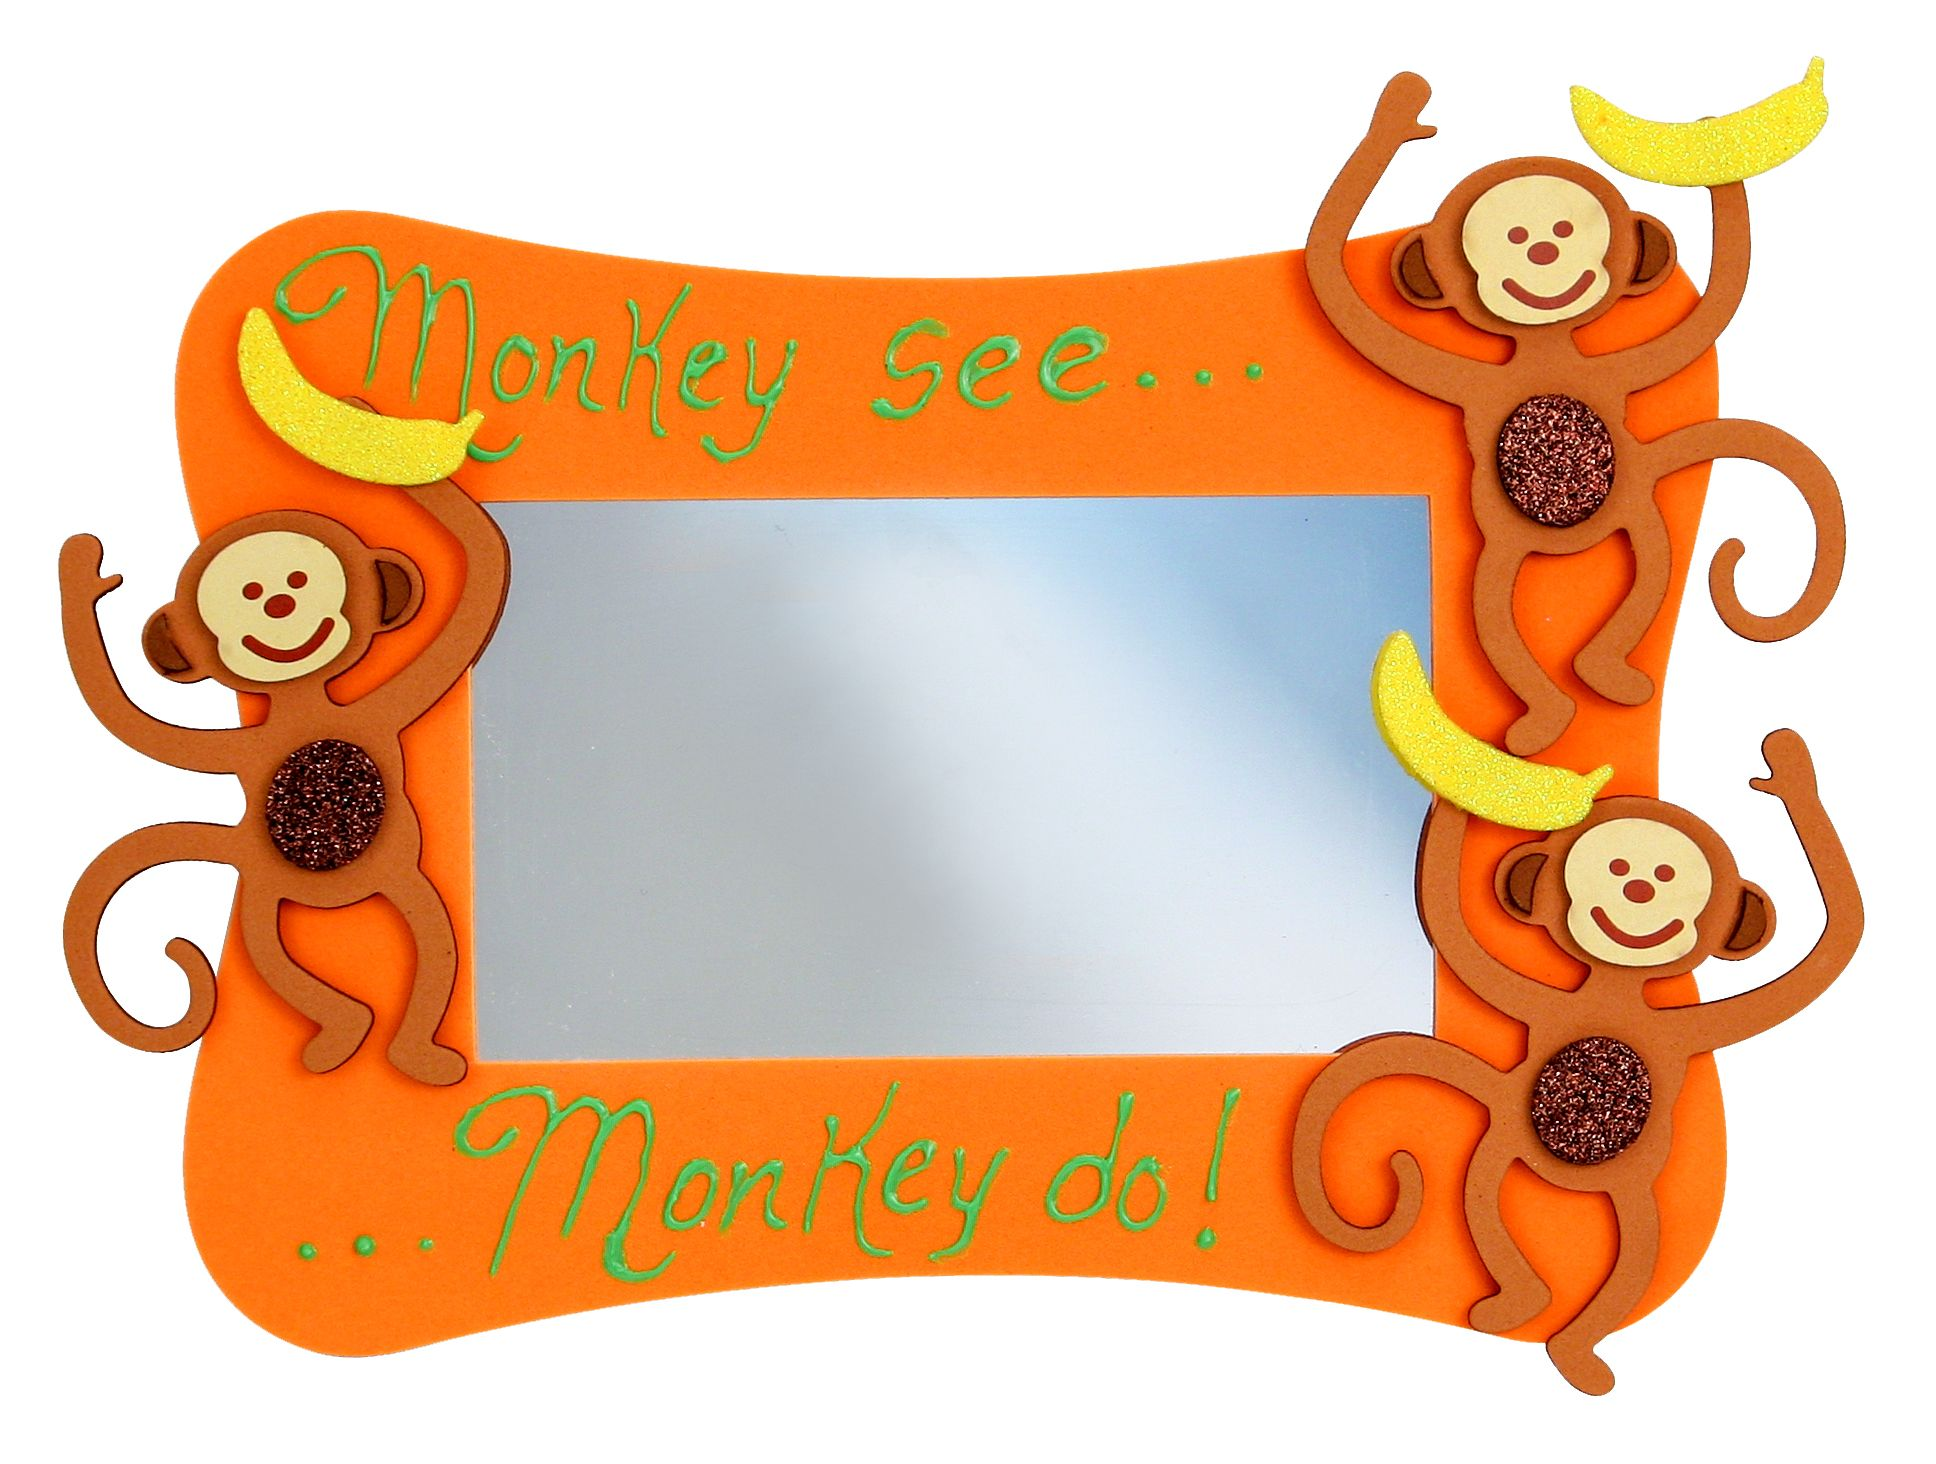 check out nicole crafts monkey frame crafting ideas at ac moore explore many more such exceptional art craft products only here